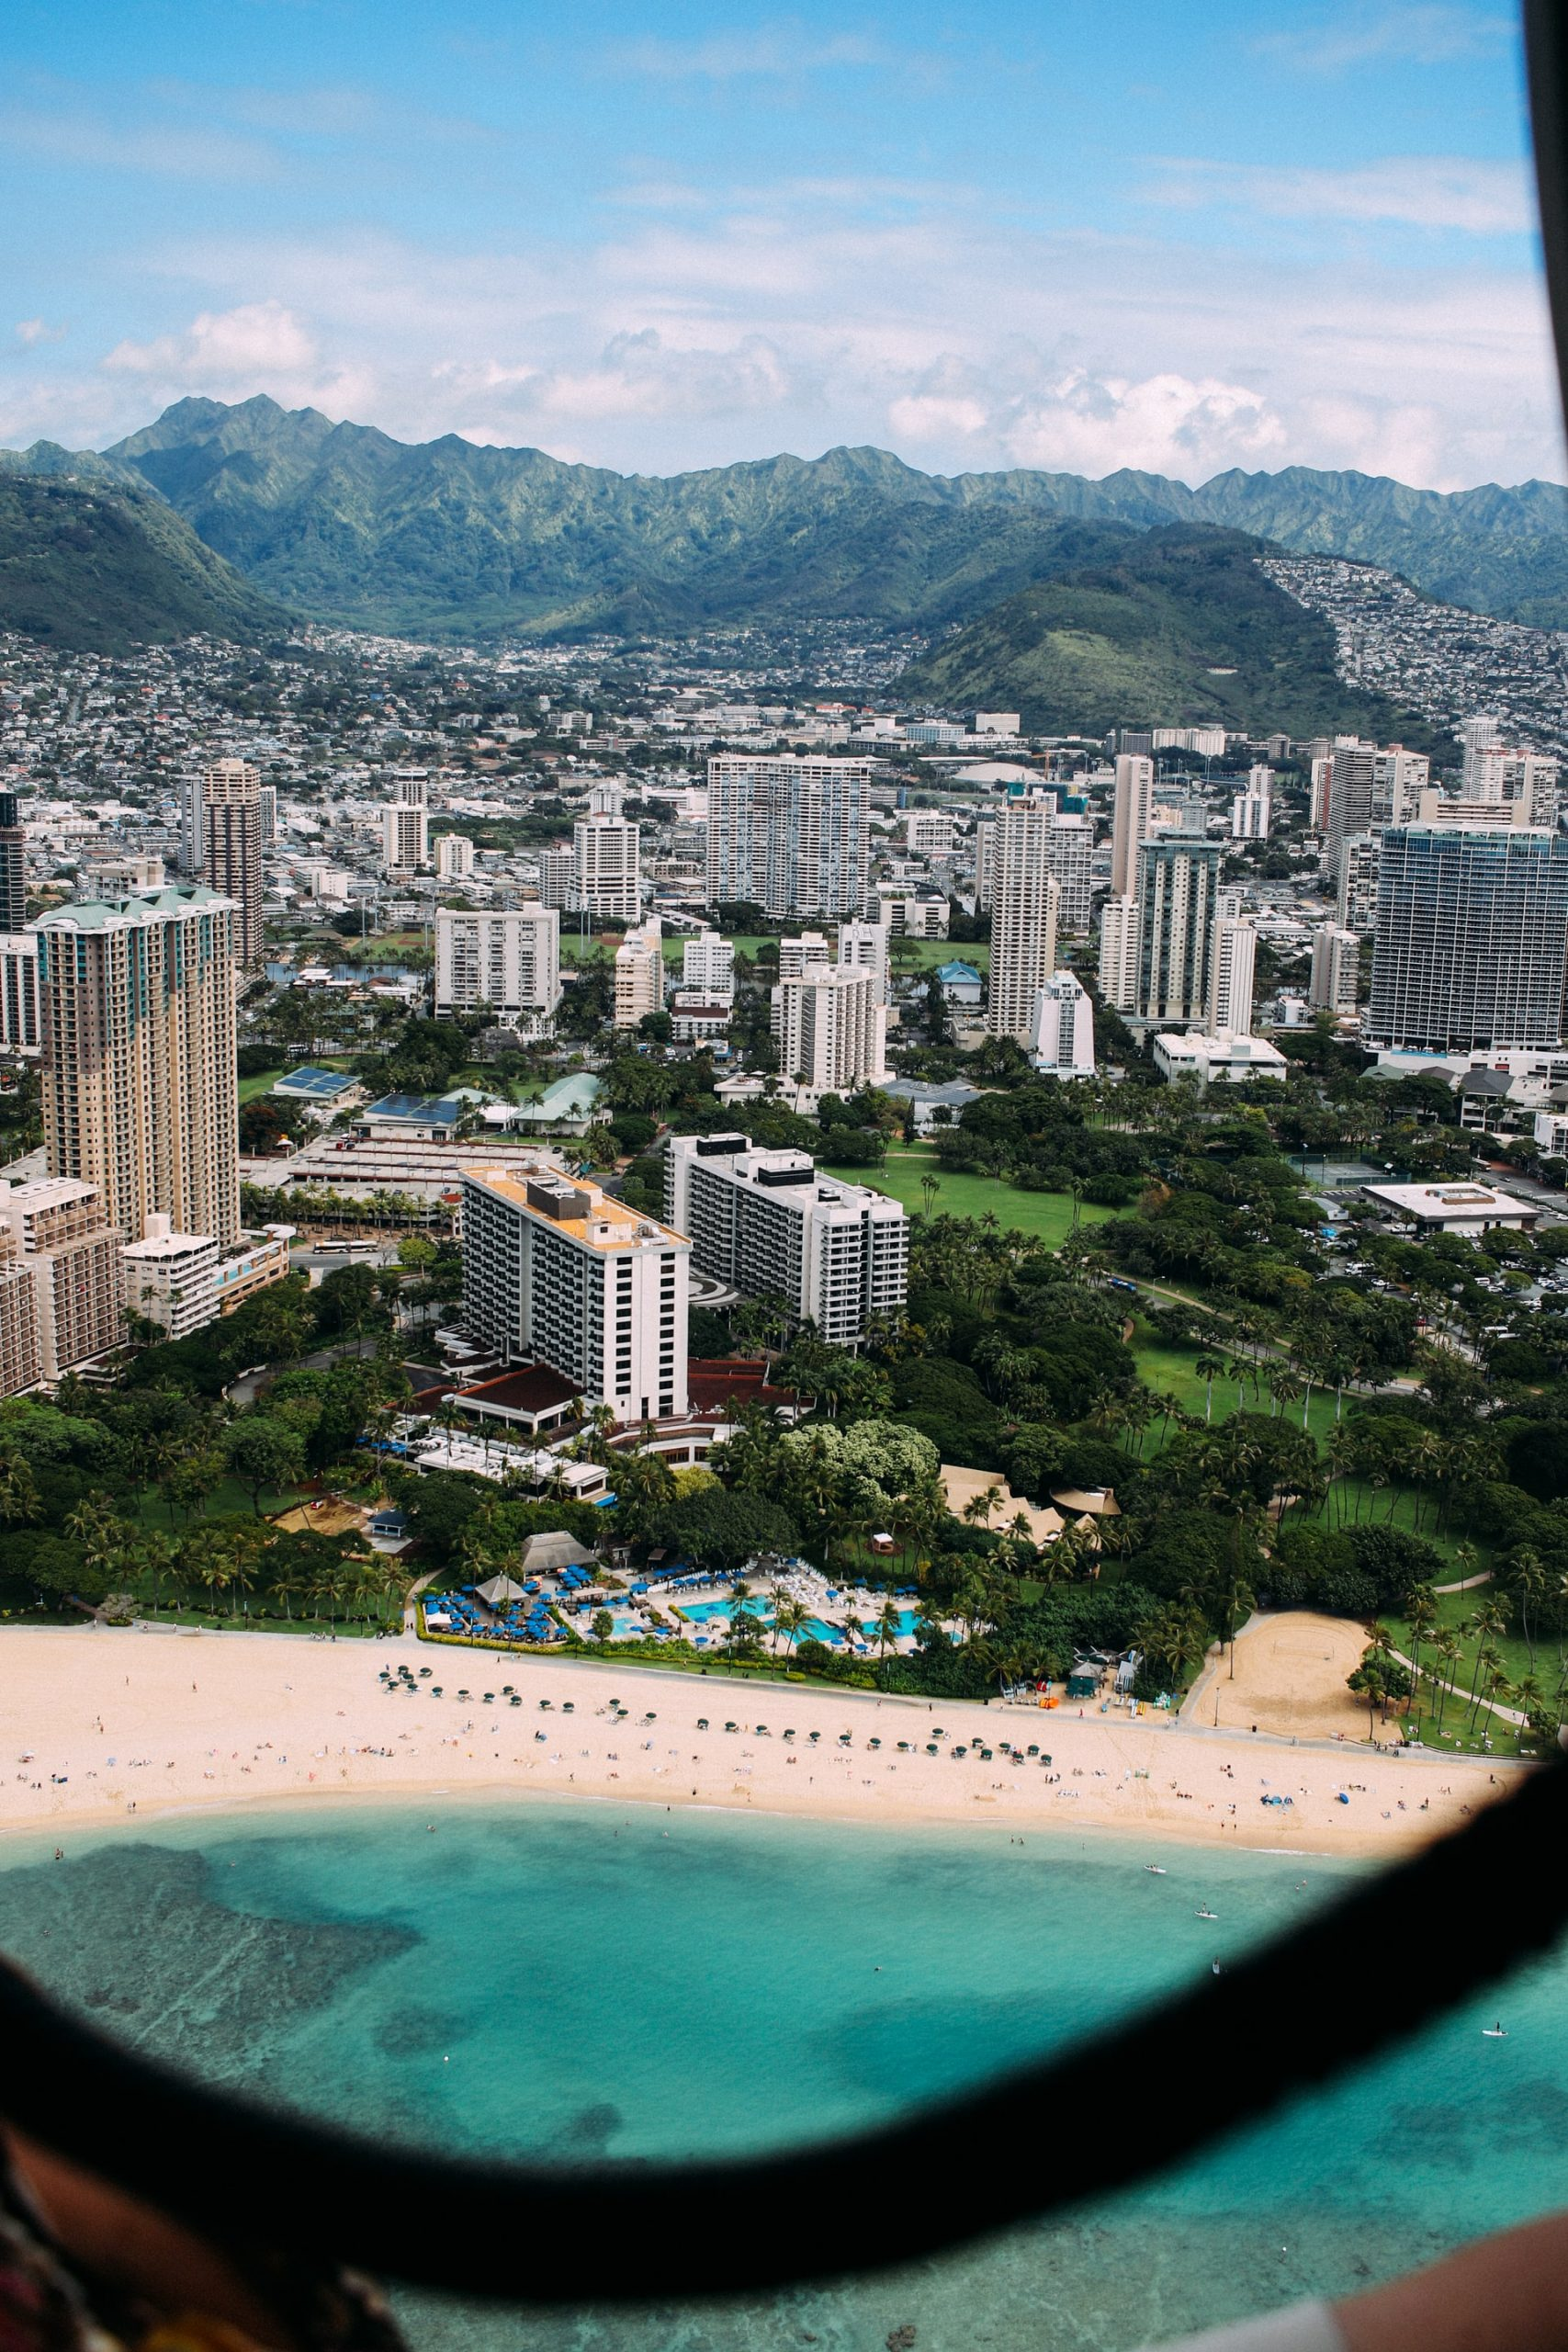 A view of the turquoise beach in Waikiki